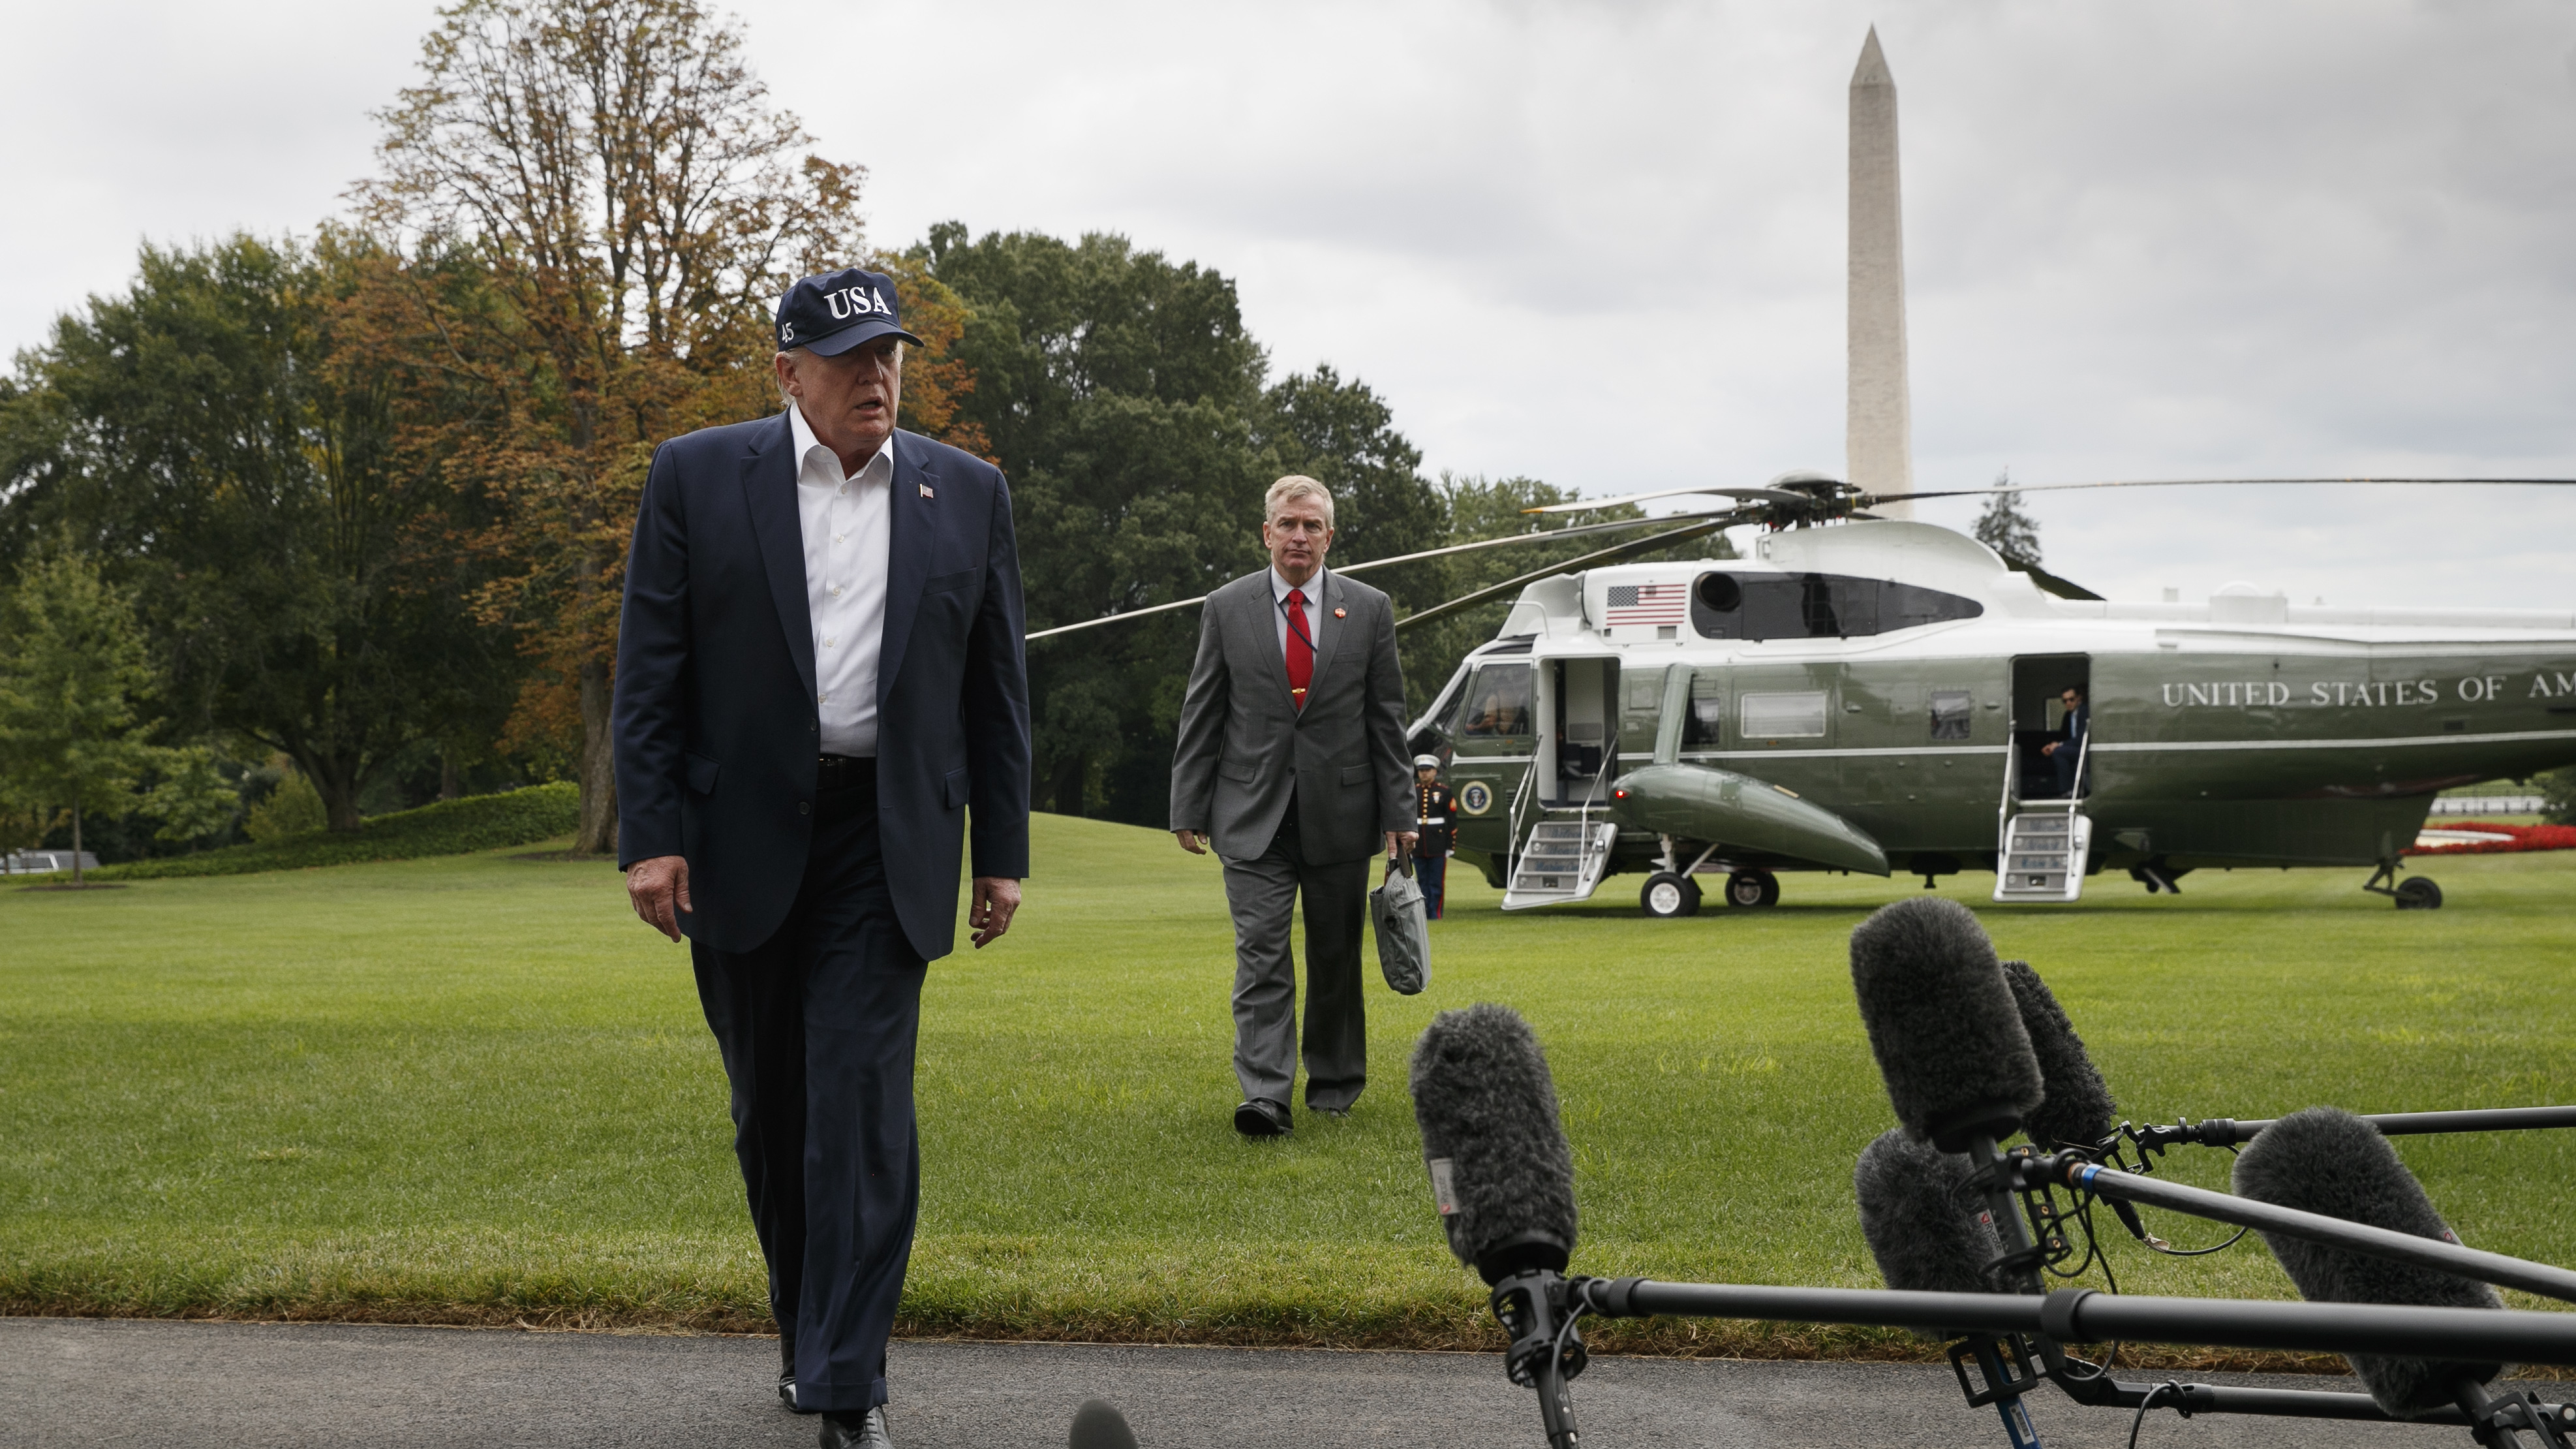 At Camp David, Trump Sought The Mantle Of History. But Afghanistan Is Different